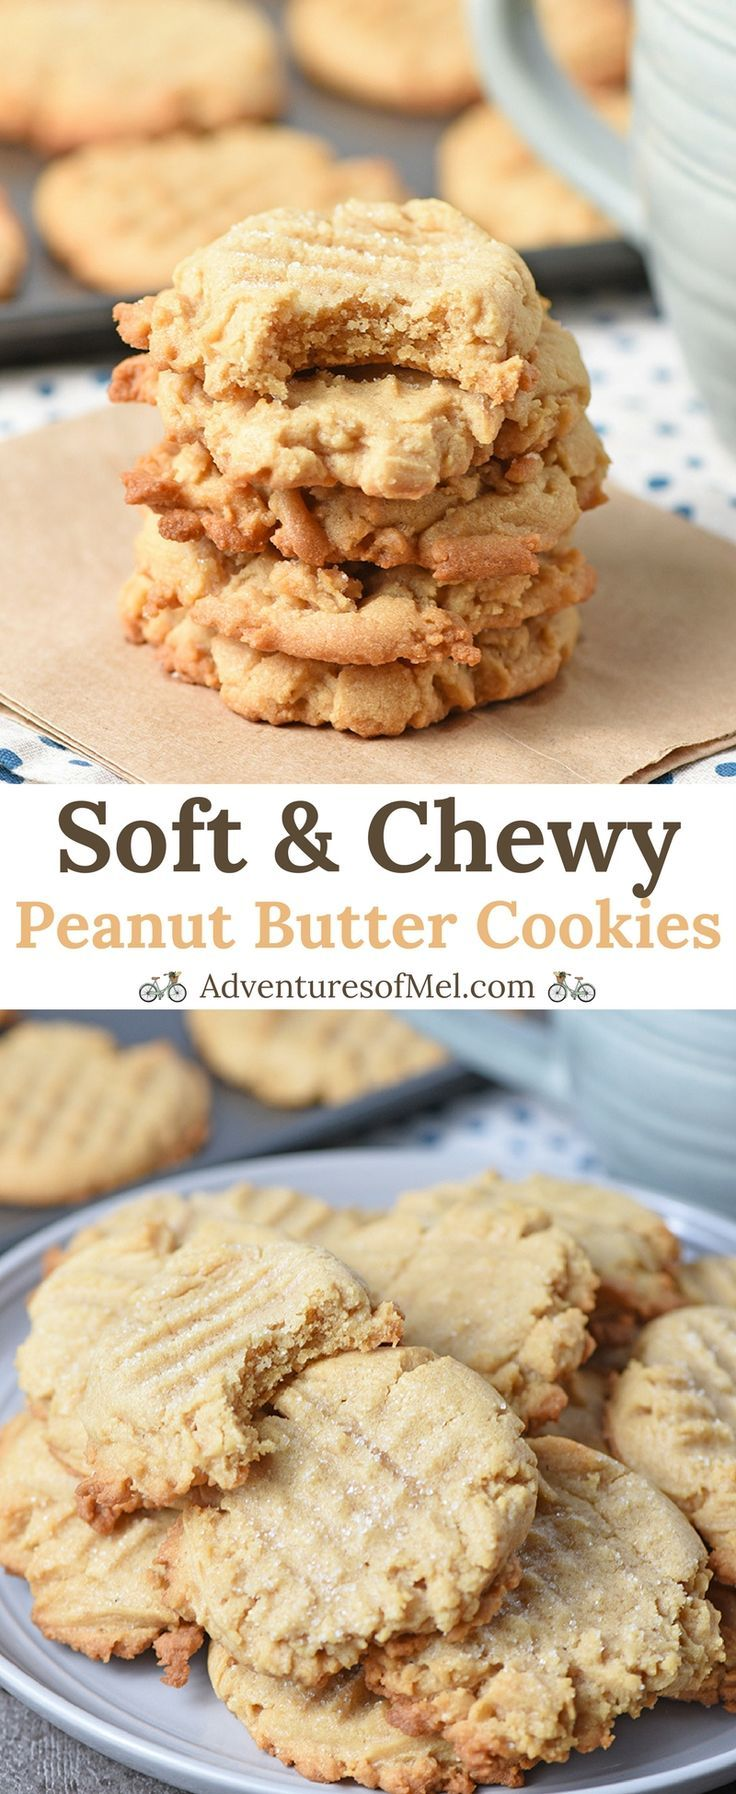 Chewy Peanut Butter Cookies | Posted By: DebbieNet.com